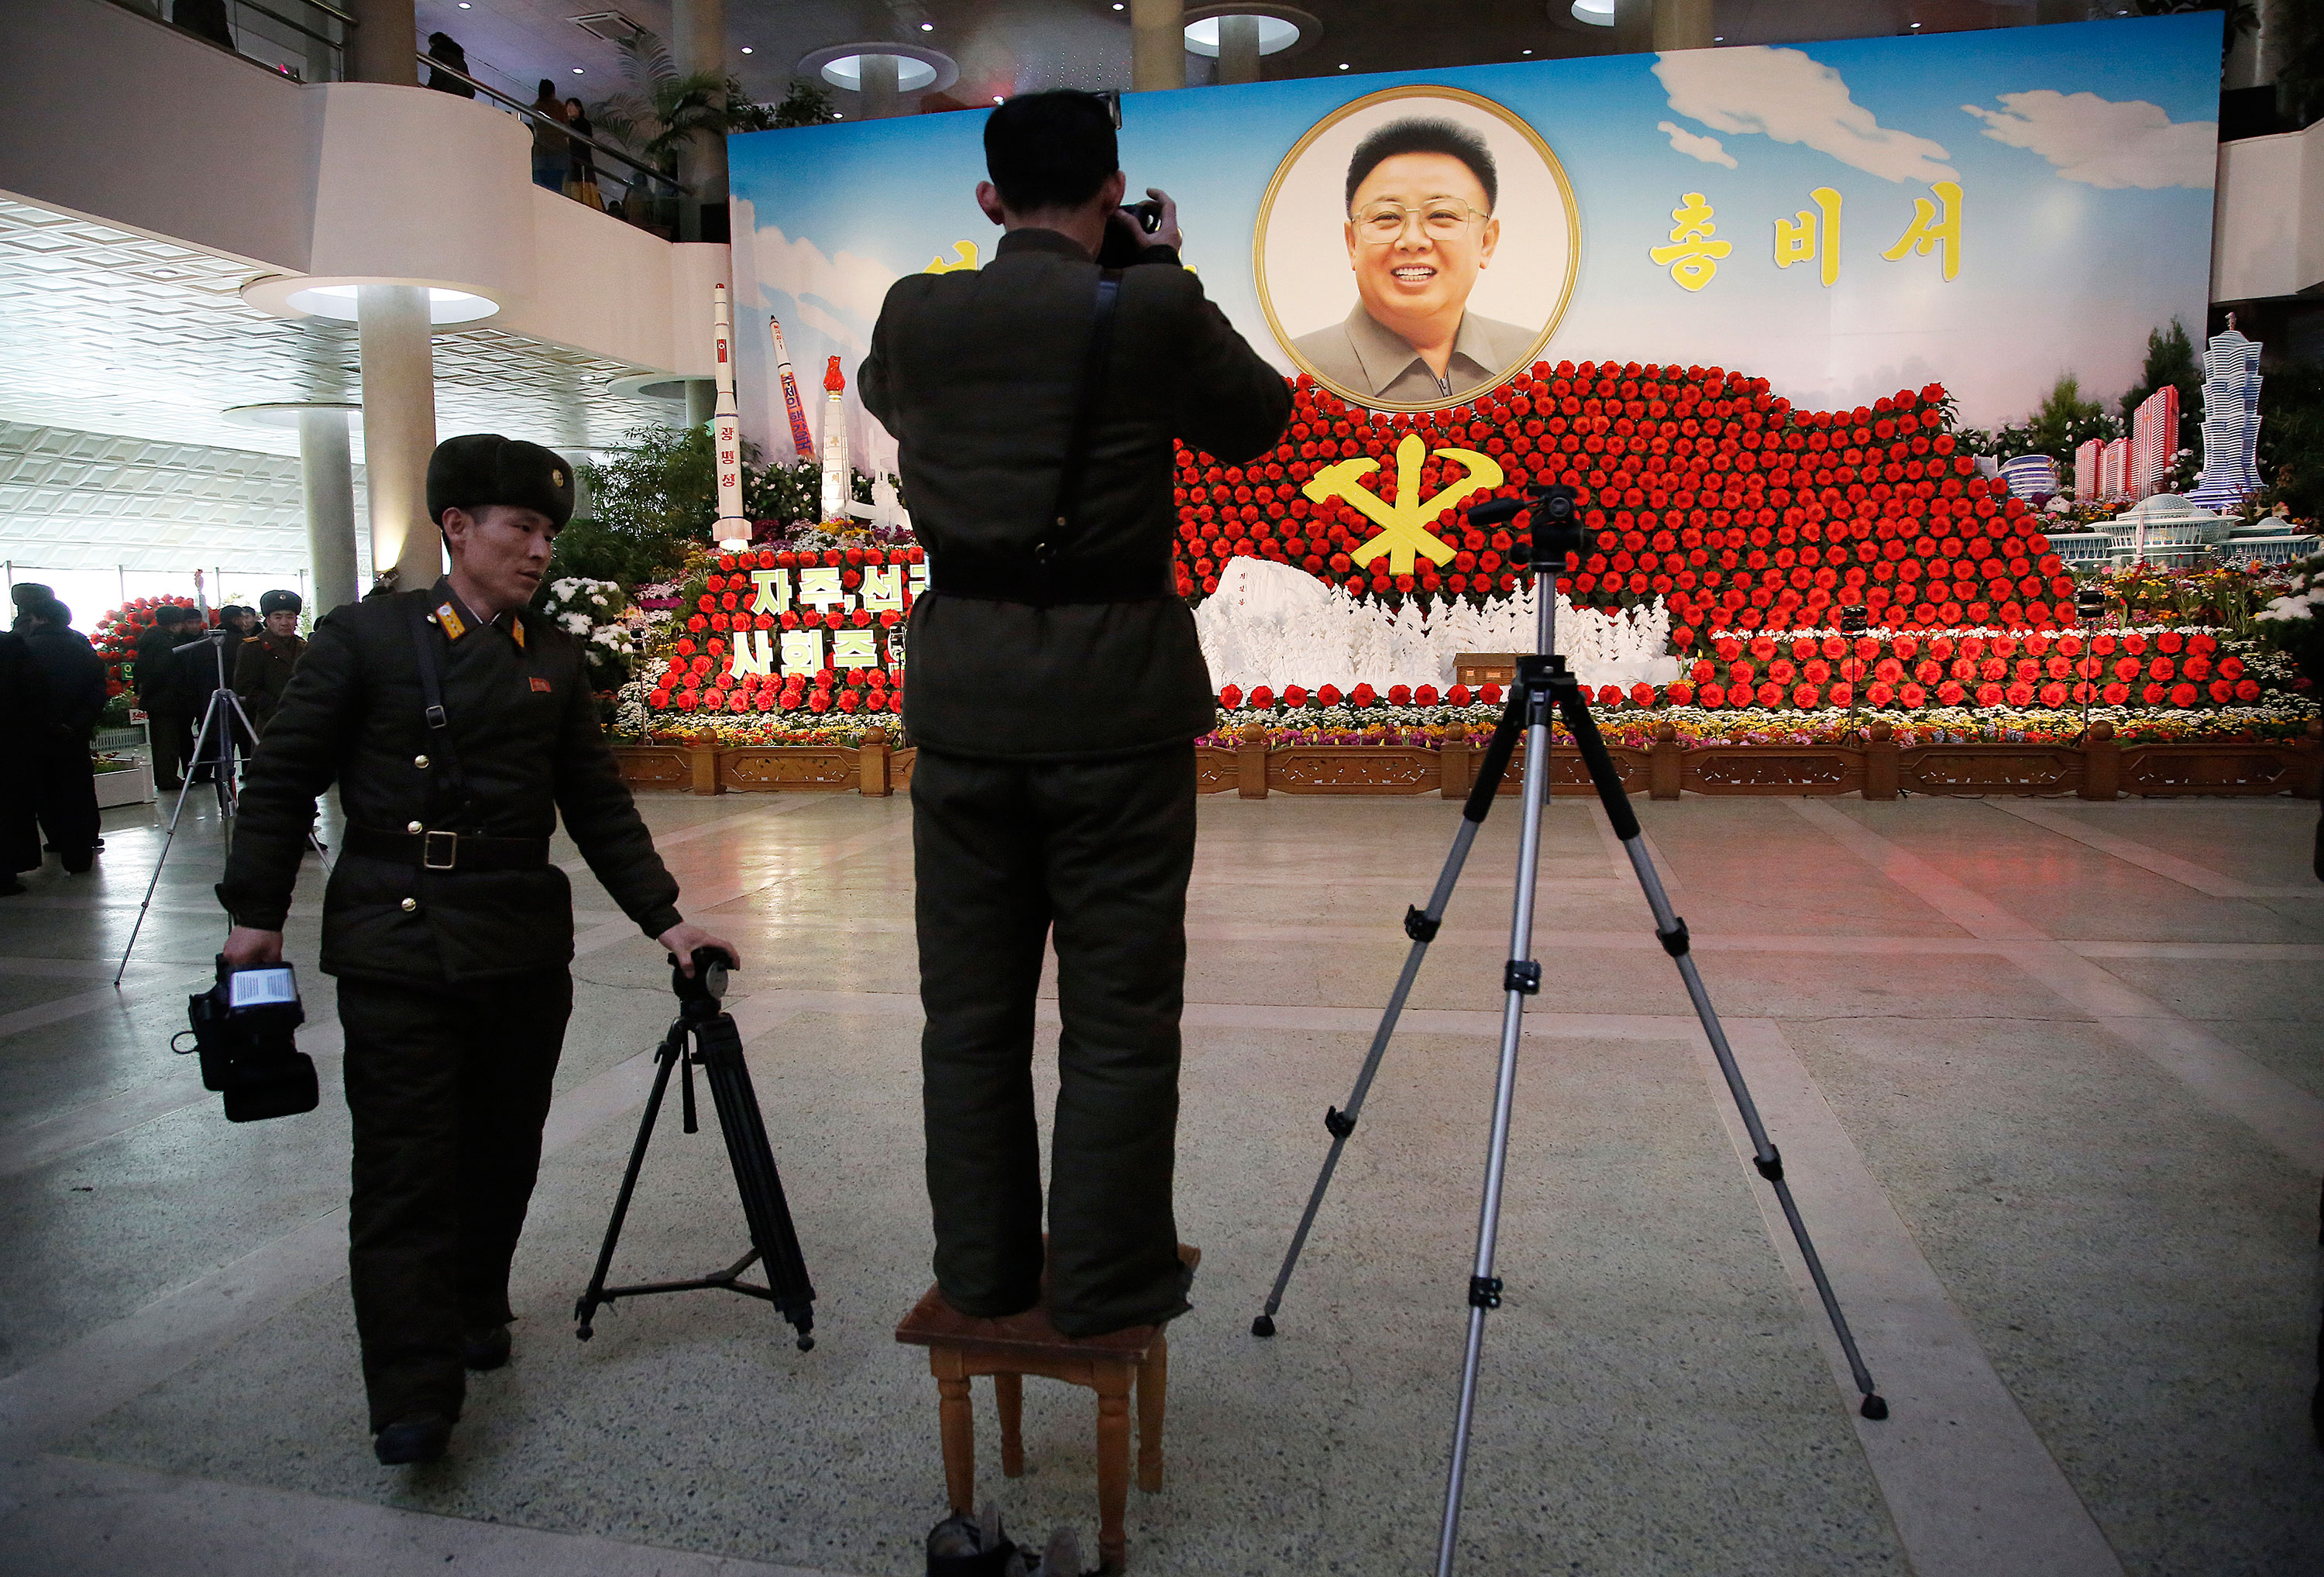 North Korean soldiers take photos of a portrait of their late leader Kim Jong Il at a flower festival with a model of North Korea''s newest satellite Kwangmyongsong 4, left, on display as part of the celebrations. [Wong Maye-E/AP]